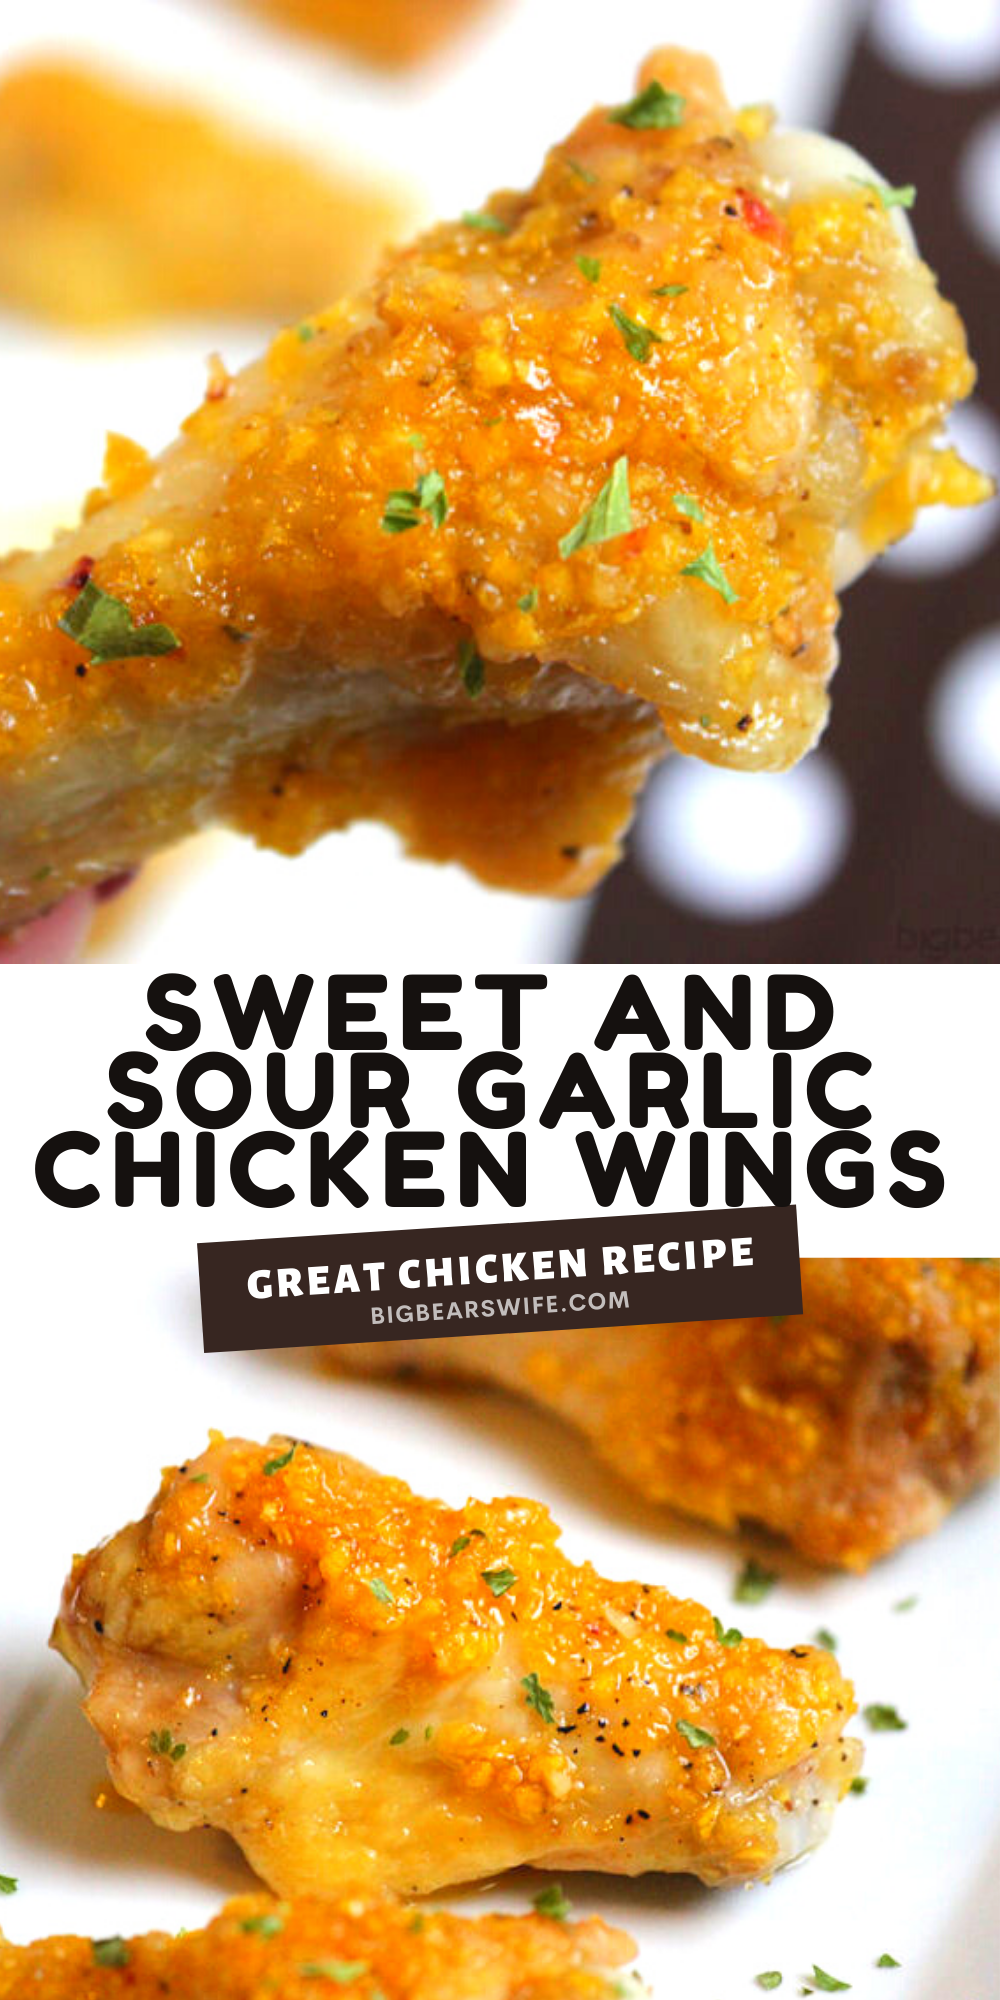 """PerfectSweet and Sour Garlic Chicken Wings for anytime of the year! Make them on Halloween and call them """"bat wings"""" via @bigbearswife"""